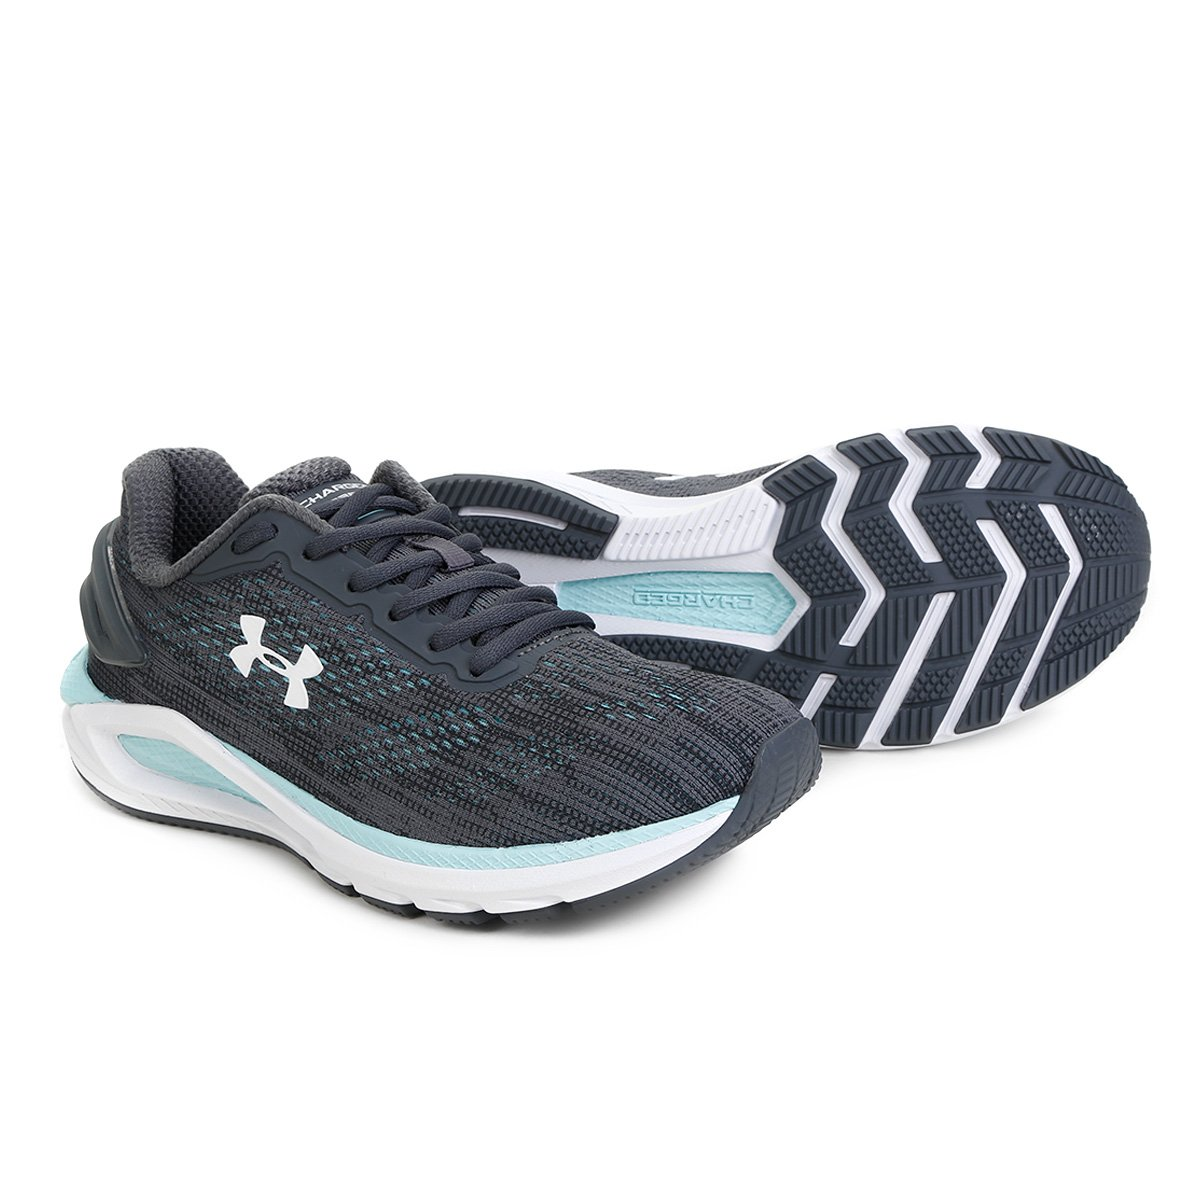 Tênis Under Armour Charged Carbon Masculino - Cinza e Verde Água